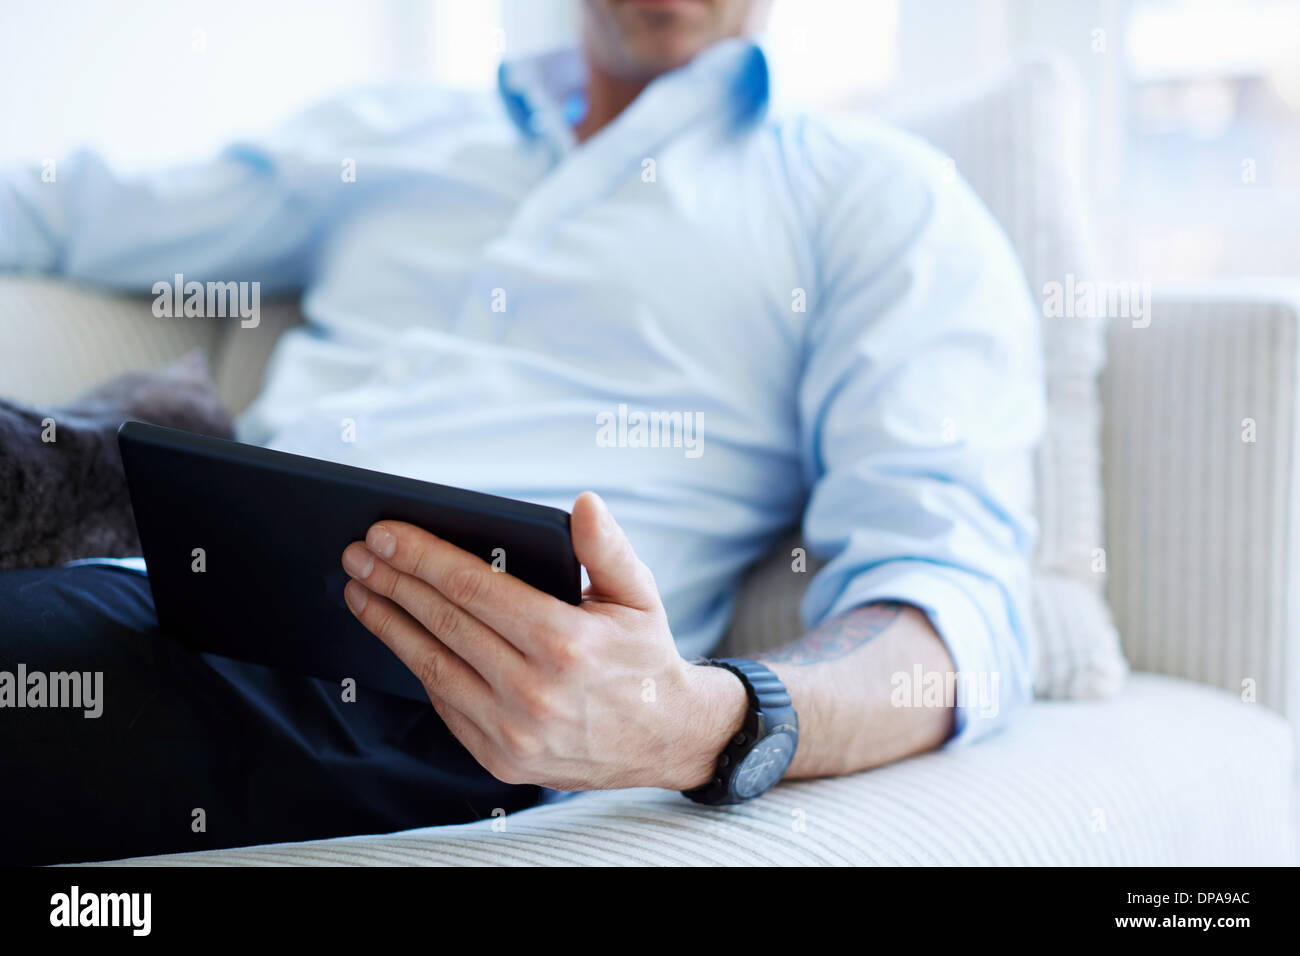 Cropped shot of man's midsection holding digital tablet - Stock Image